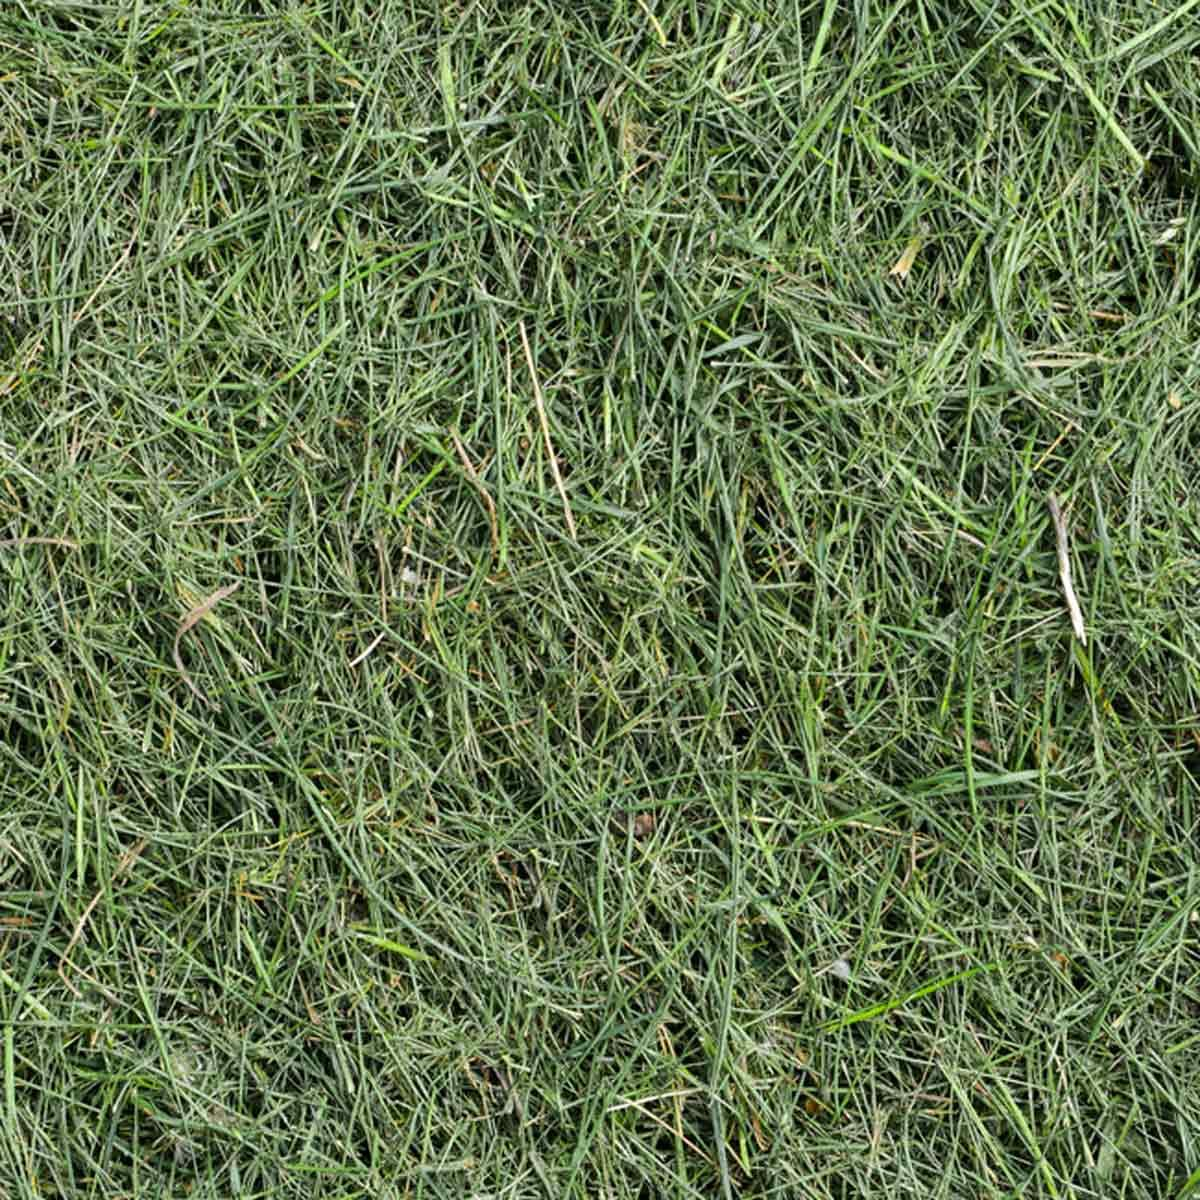 Recycle Grass Clippings